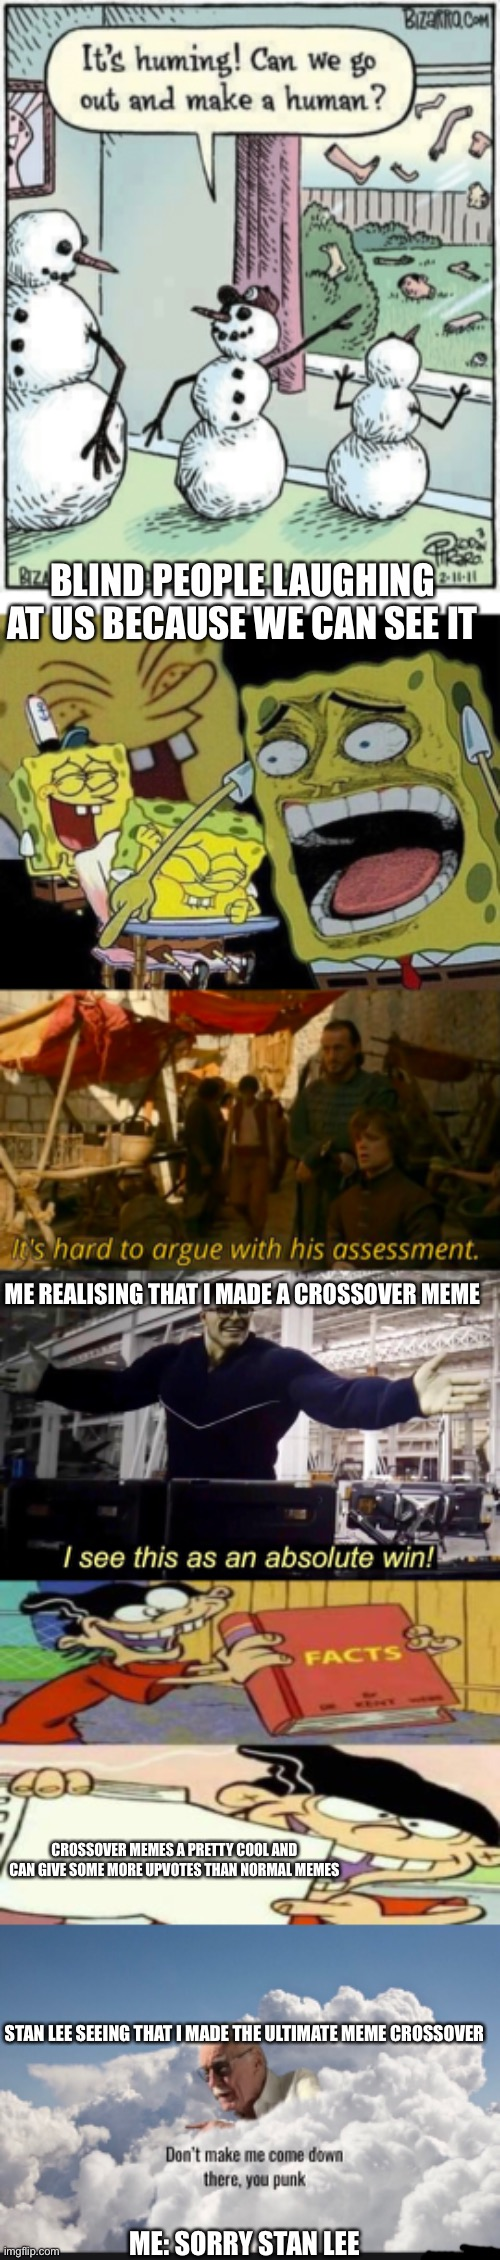 The ultimate meme crossover |  BLIND PEOPLE LAUGHING AT US BECAUSE WE CAN SEE IT; ME REALISING THAT I MADE A CROSSOVER MEME; CROSSOVER MEMES A PRETTY COOL AND CAN GIVE SOME MORE UPVOTES THAN NORMAL MEMES; STAN LEE SEEING THAT I MADE THE ULTIMATE MEME CROSSOVER; ME: SORRY STAN LEE | image tagged in crossover,maximum overdrive | made w/ Imgflip meme maker